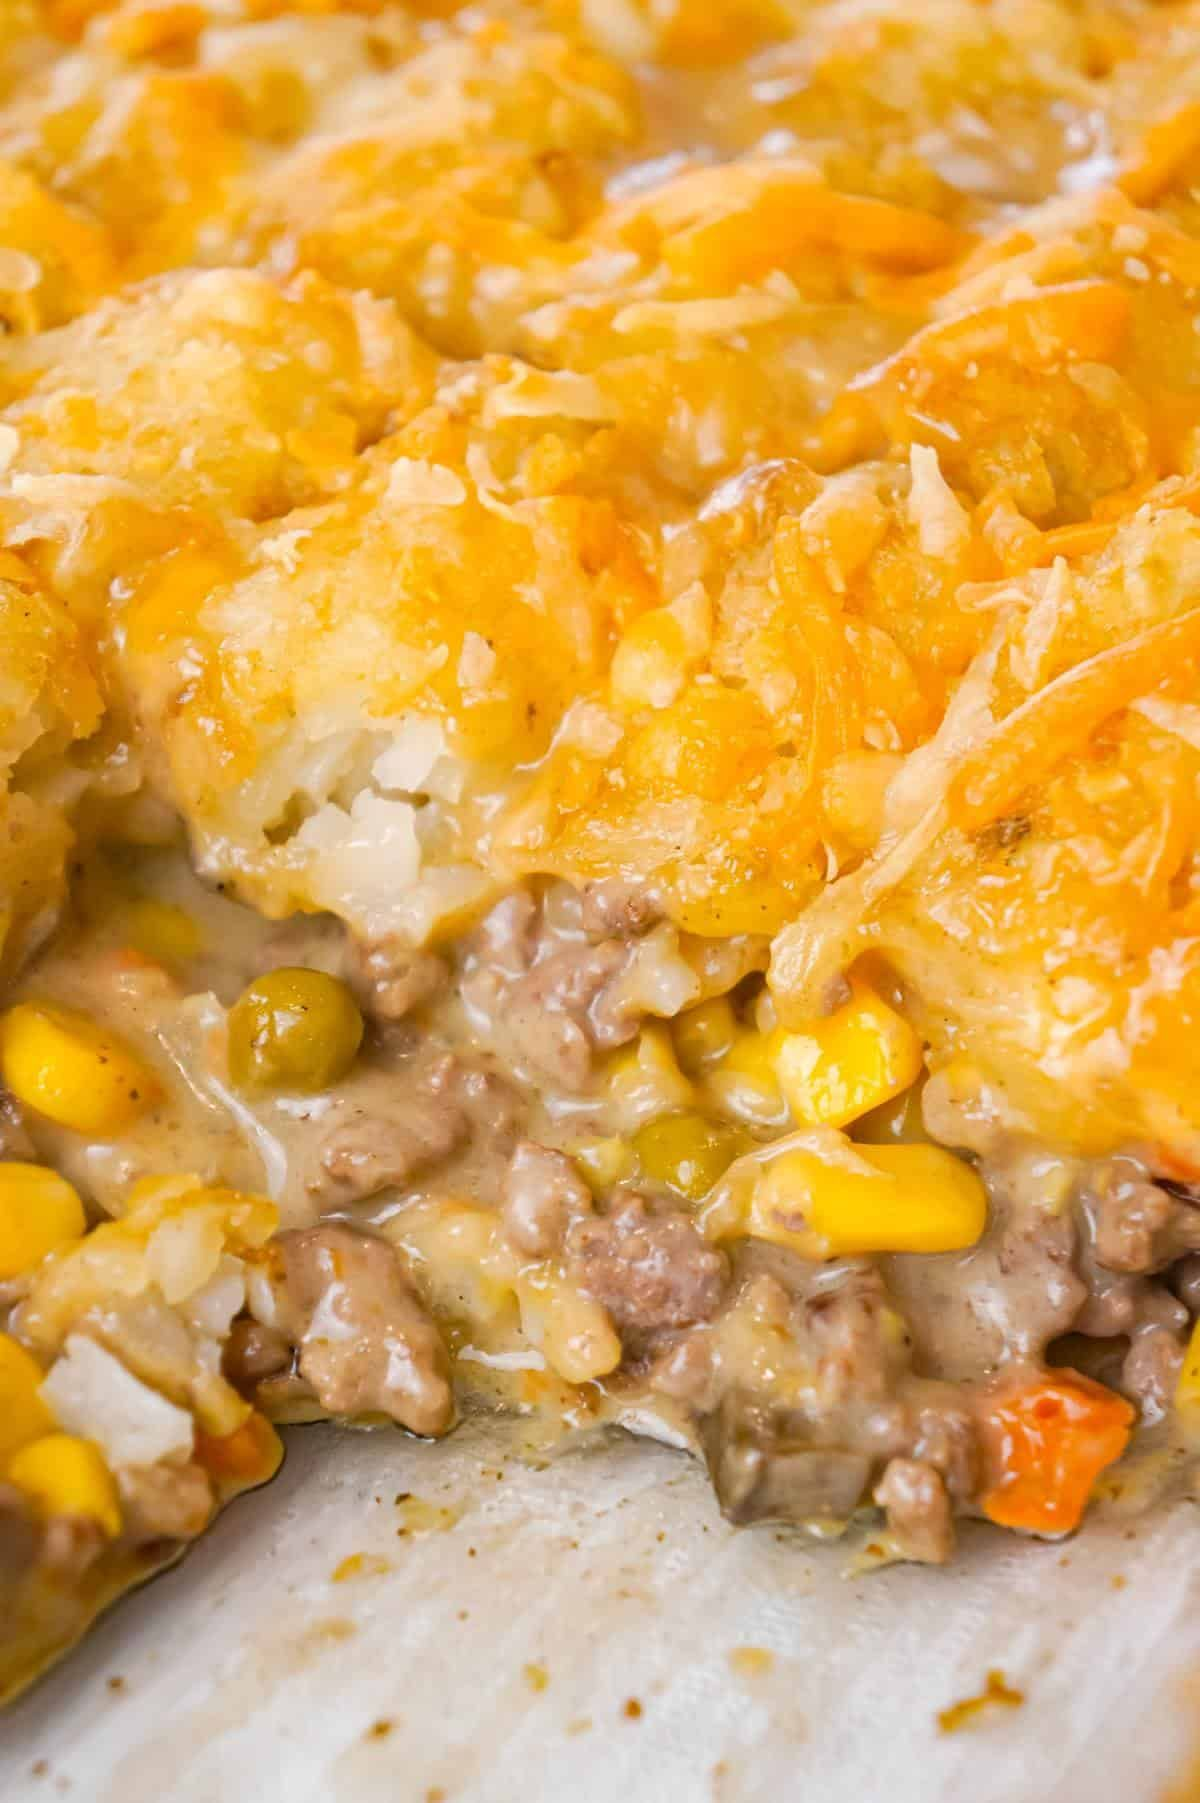 Tater Tot Hotdish Is An Easy Ground Beef Casserole Recipe Loaded With Canned Veggies In 2020 Beef Casserole Recipes Tater Tot Casserole Ground Beef Casserole Recipes